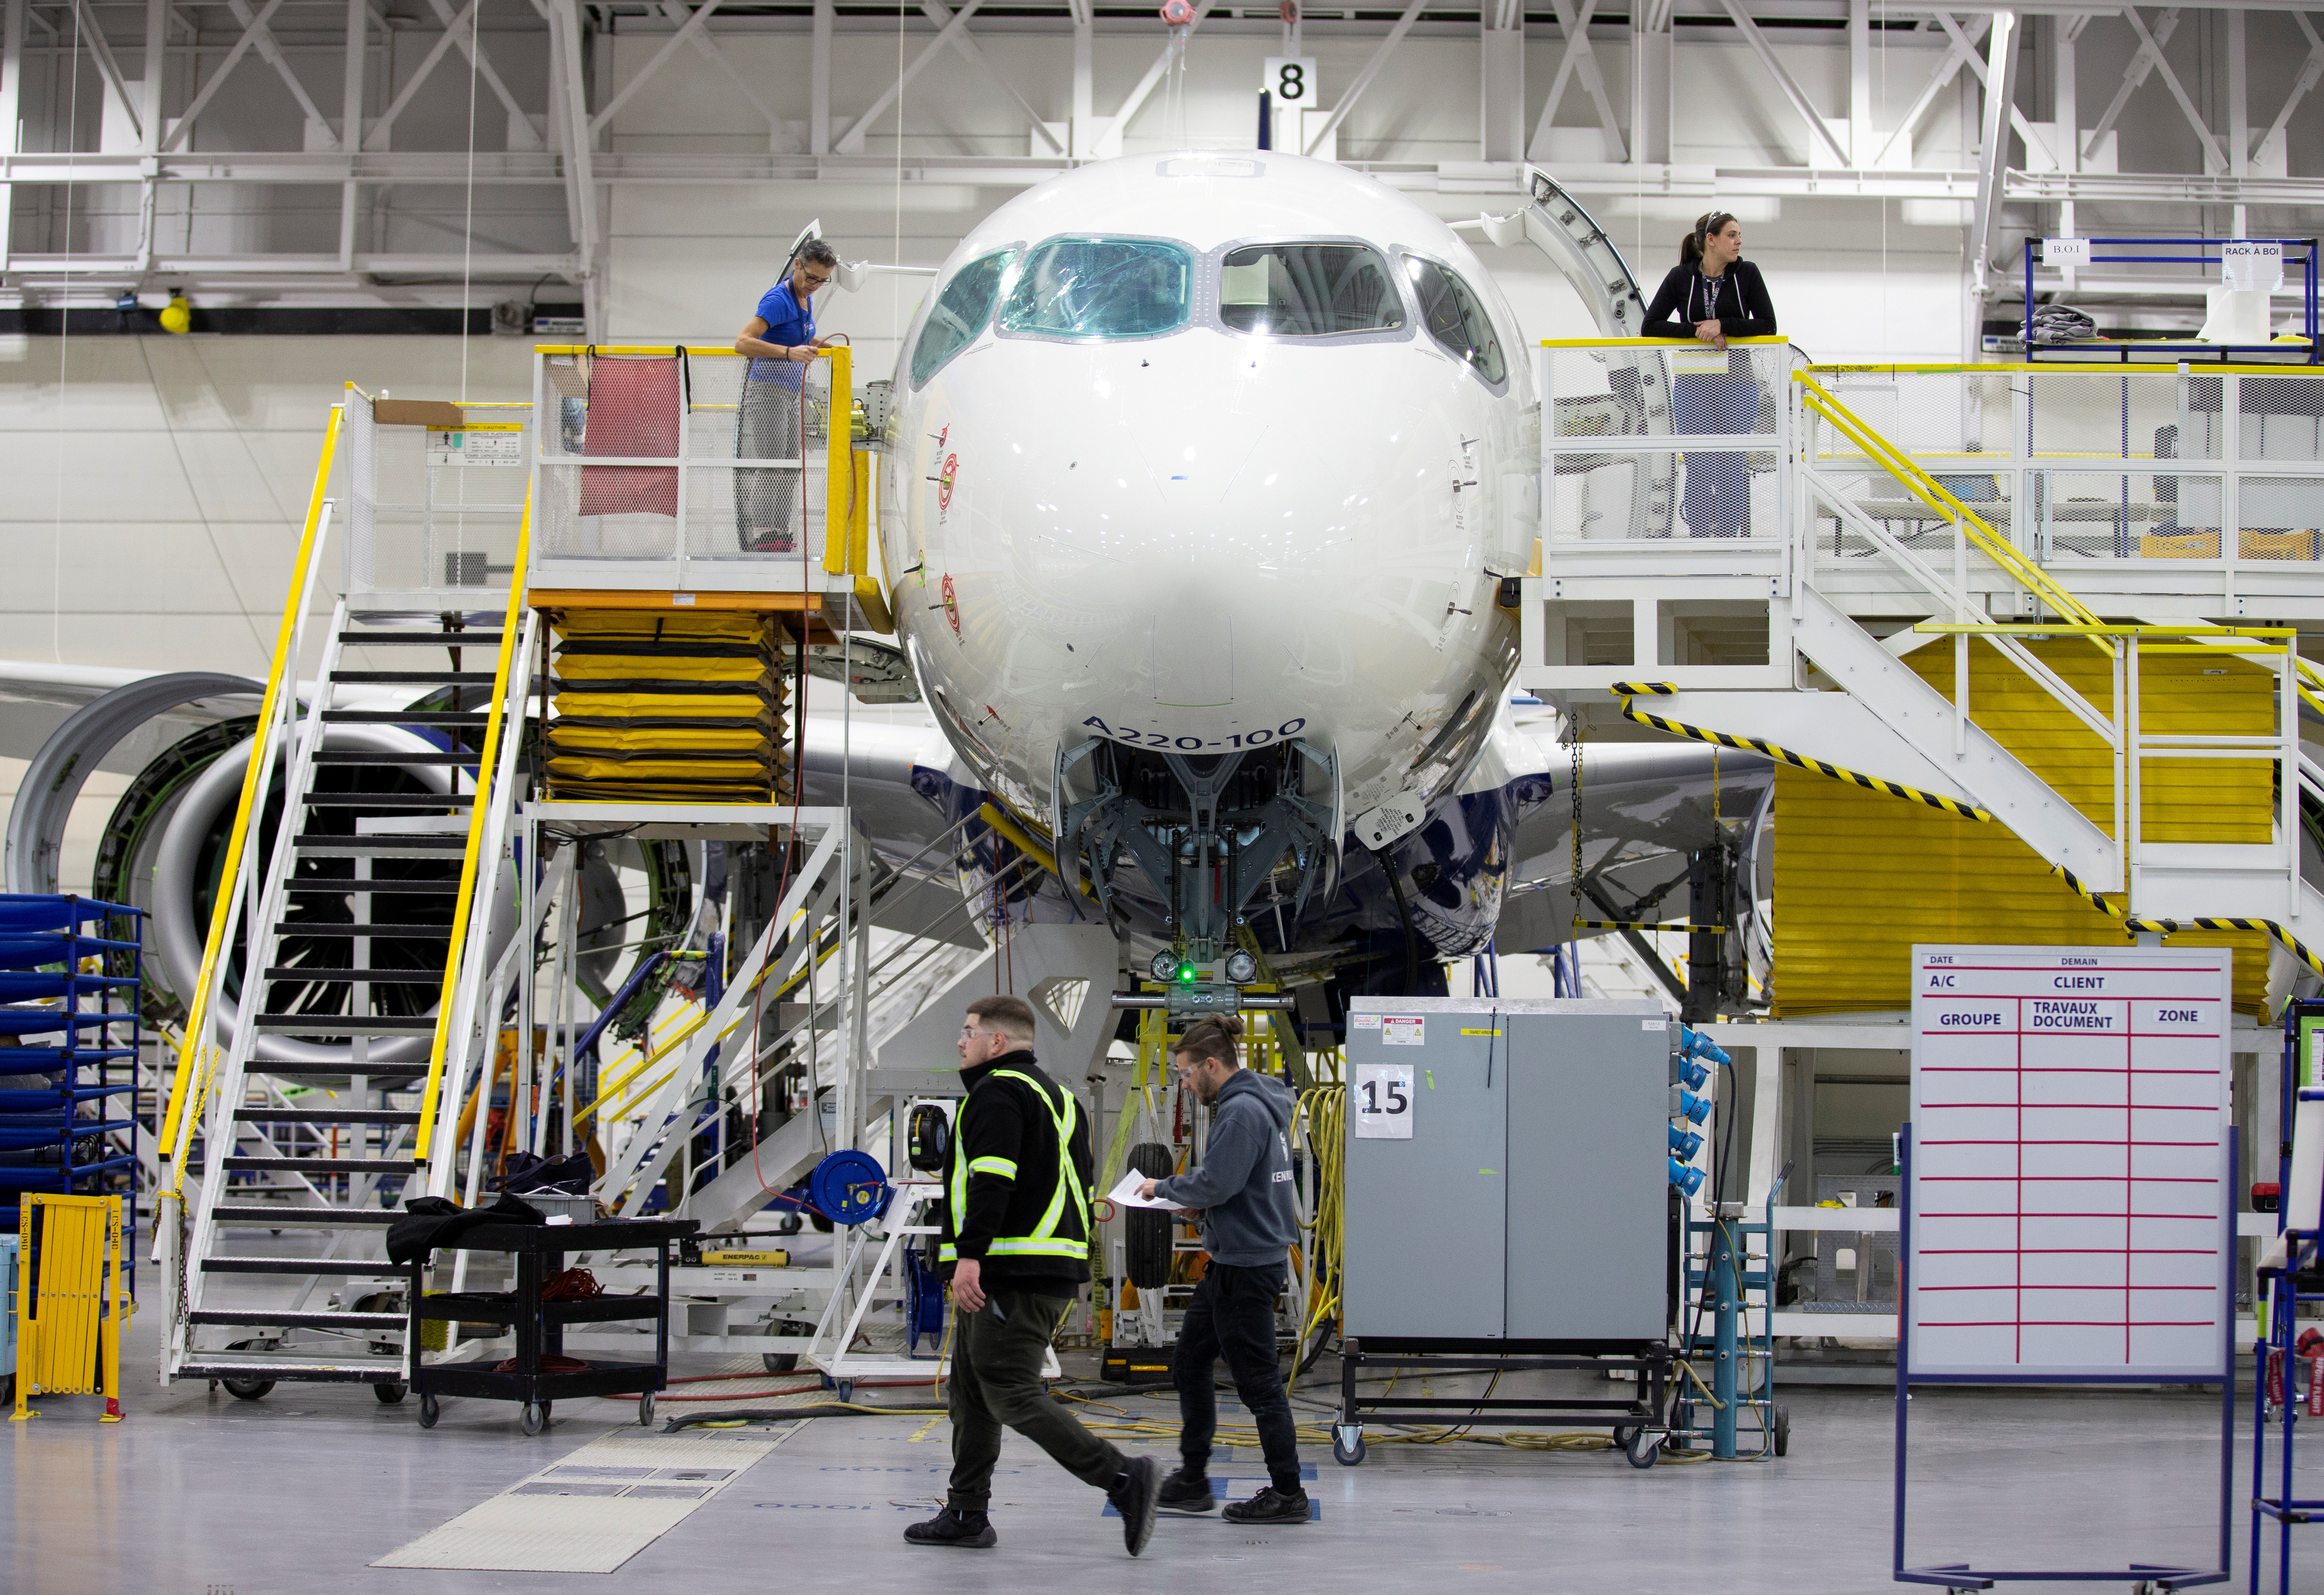 Employees work on an Airbus A220-300 at the Airbus facility in Mirabel, Quebec, Canada February 20, 2020.  REUTERS/Christinne Muschi